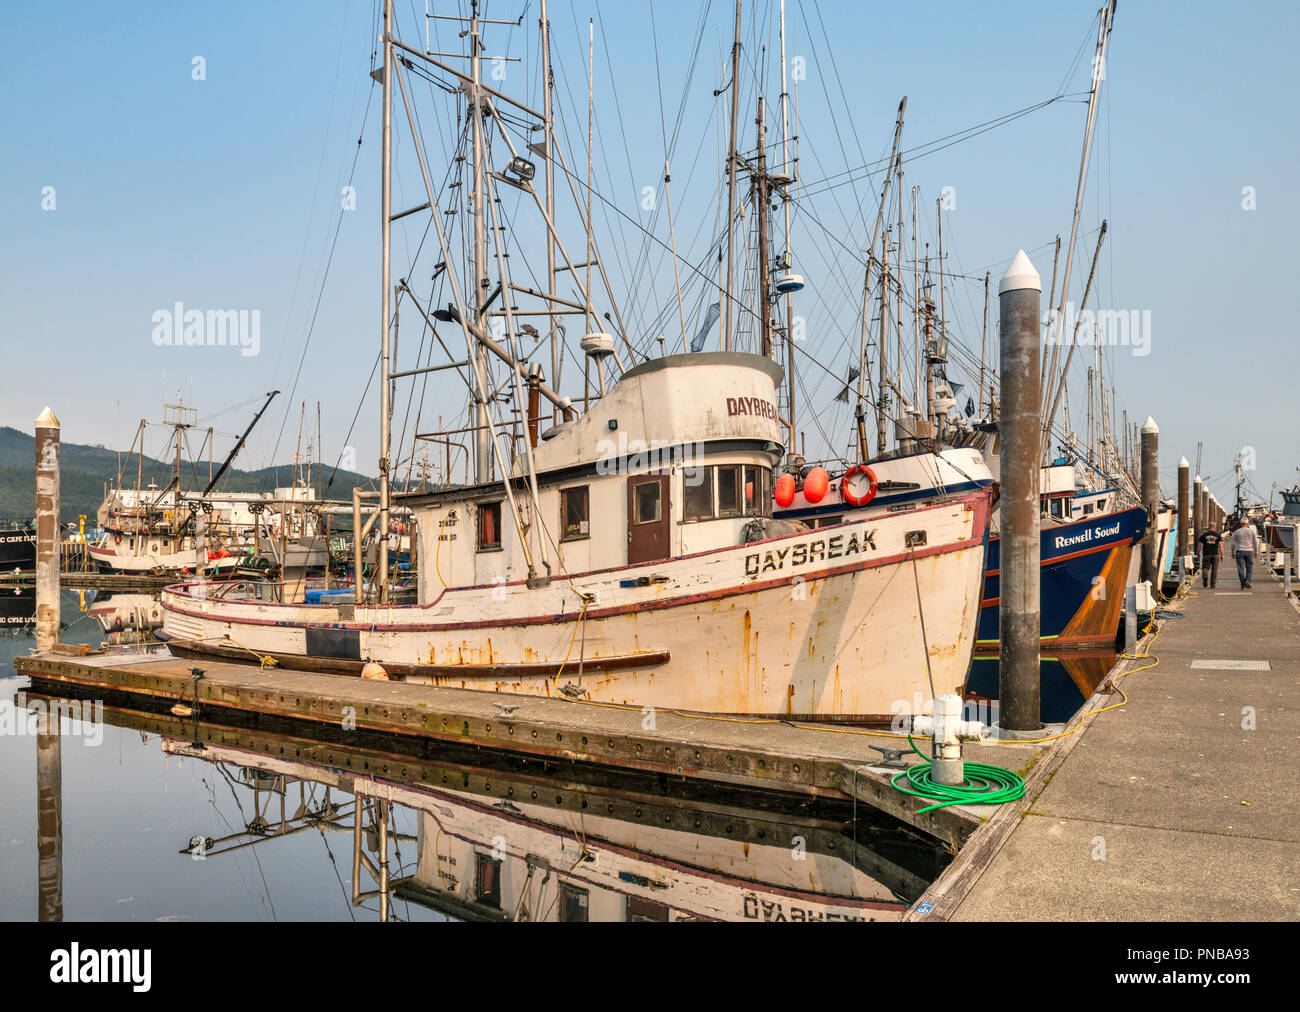 Bateaux de pêche au port de plaisance, Makah Neah Bay, Réserve indienne Makah, Olympic Peninsula, Washington State, USA Photo Stock